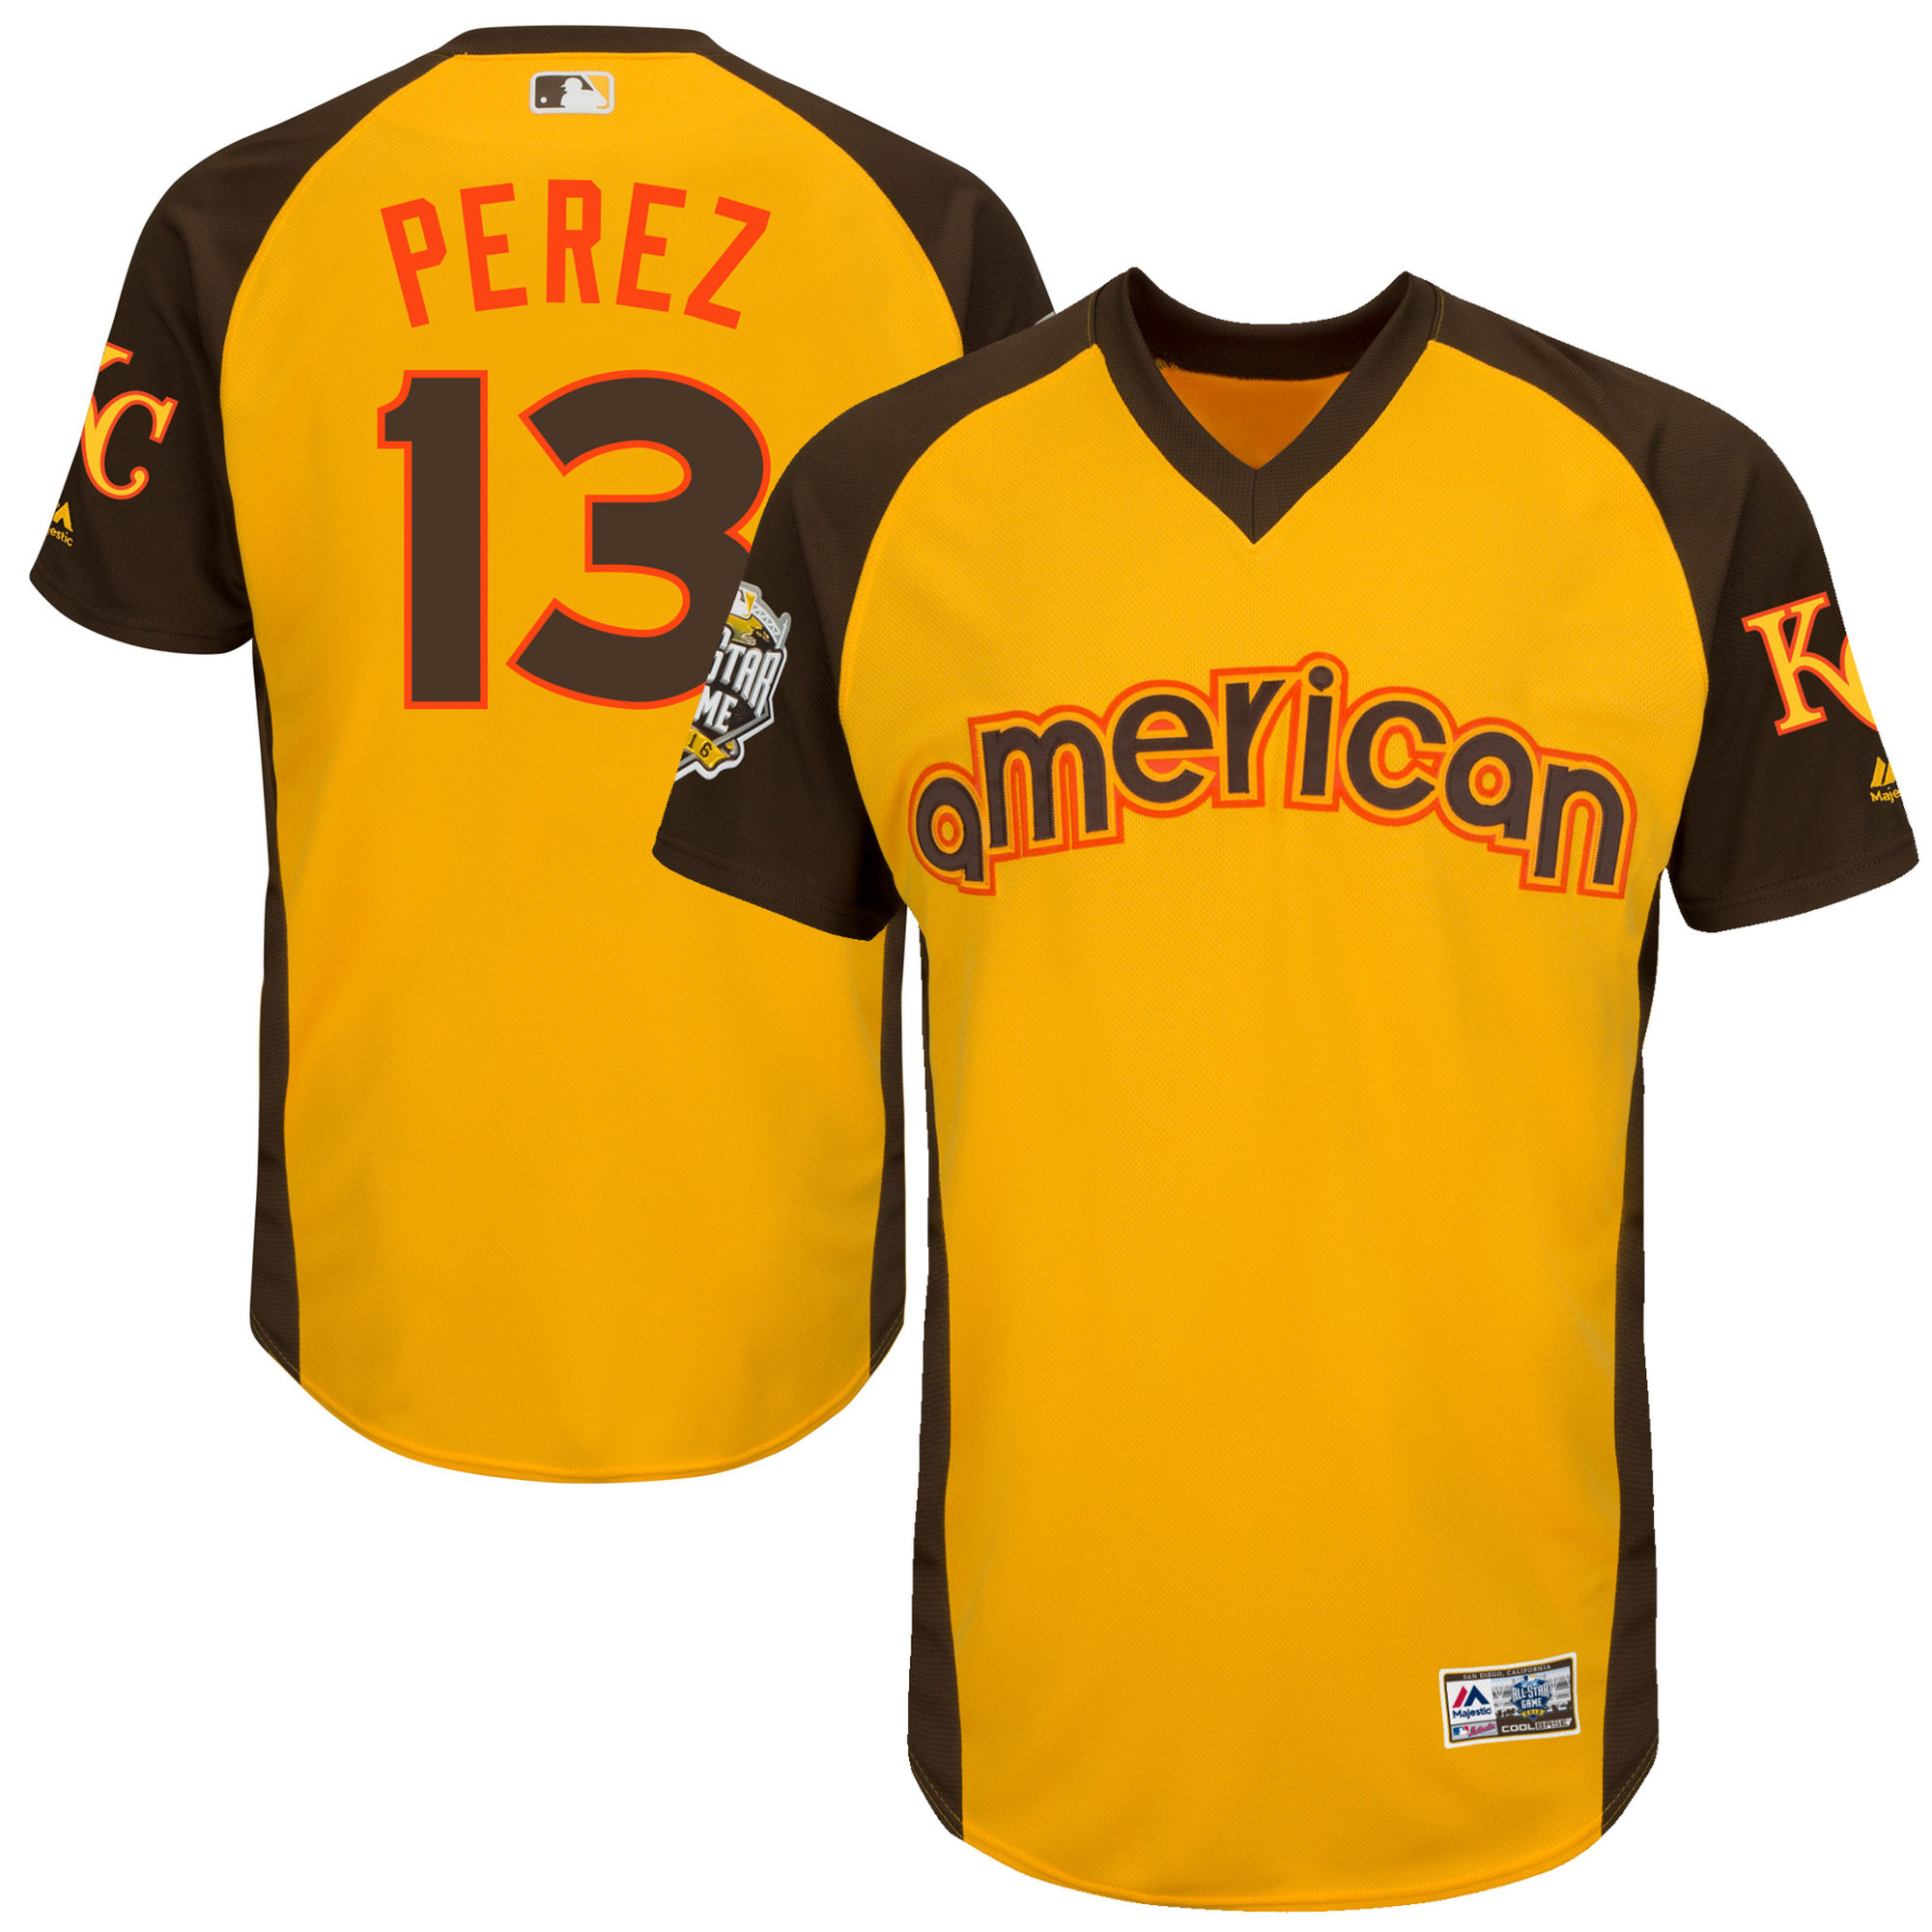 Royals 13 Salvador Perez Yellow Youth 2016 All-Star Game Cool Base Batting Practice Player Jersey